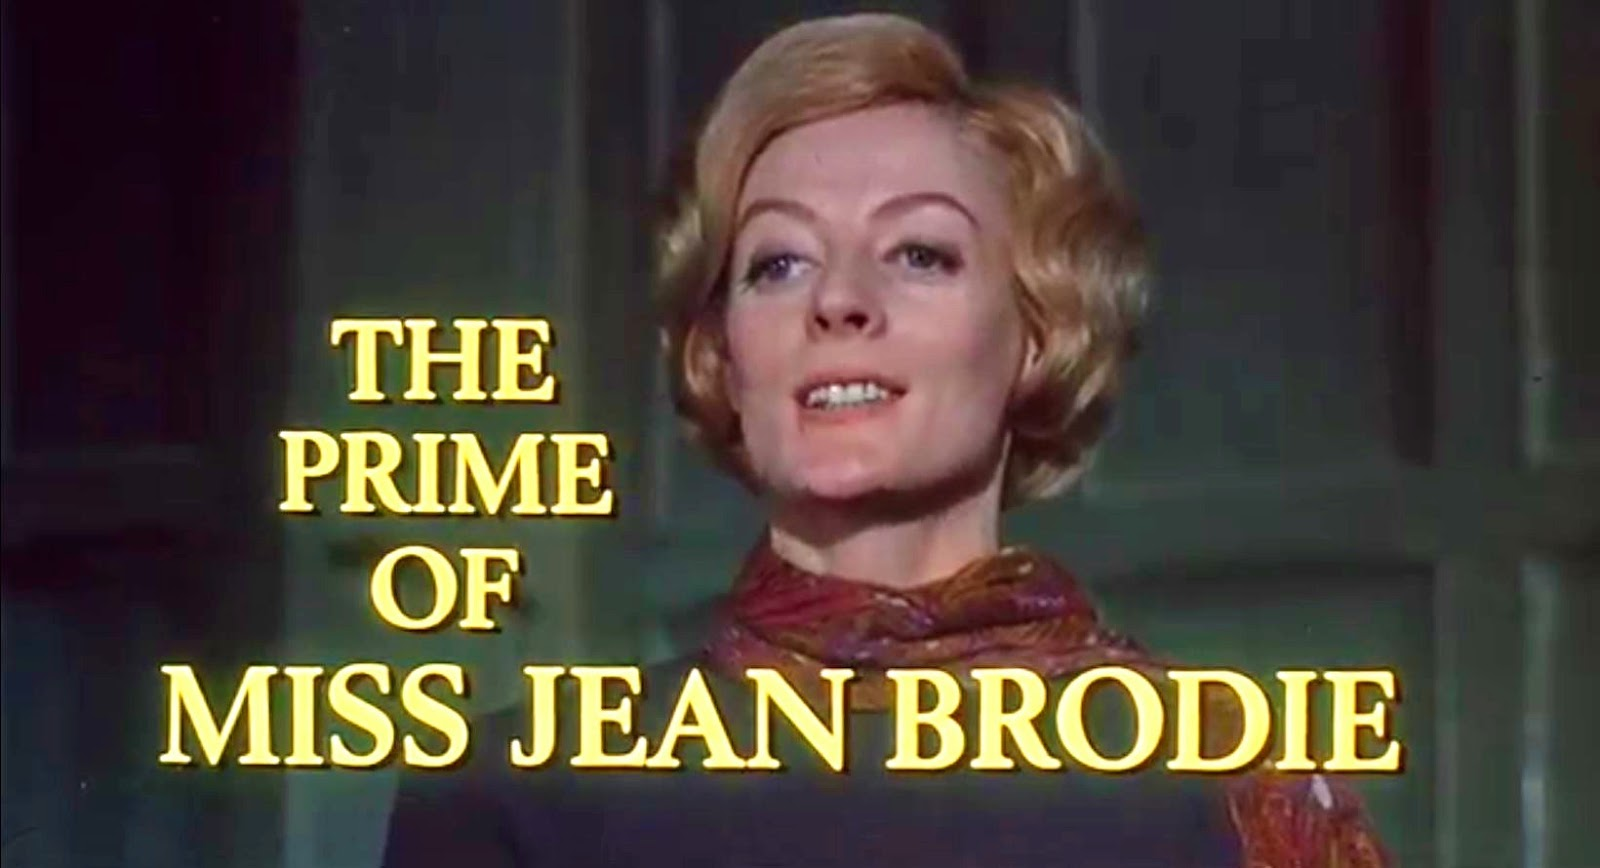 The prime of miss jean brodie essay